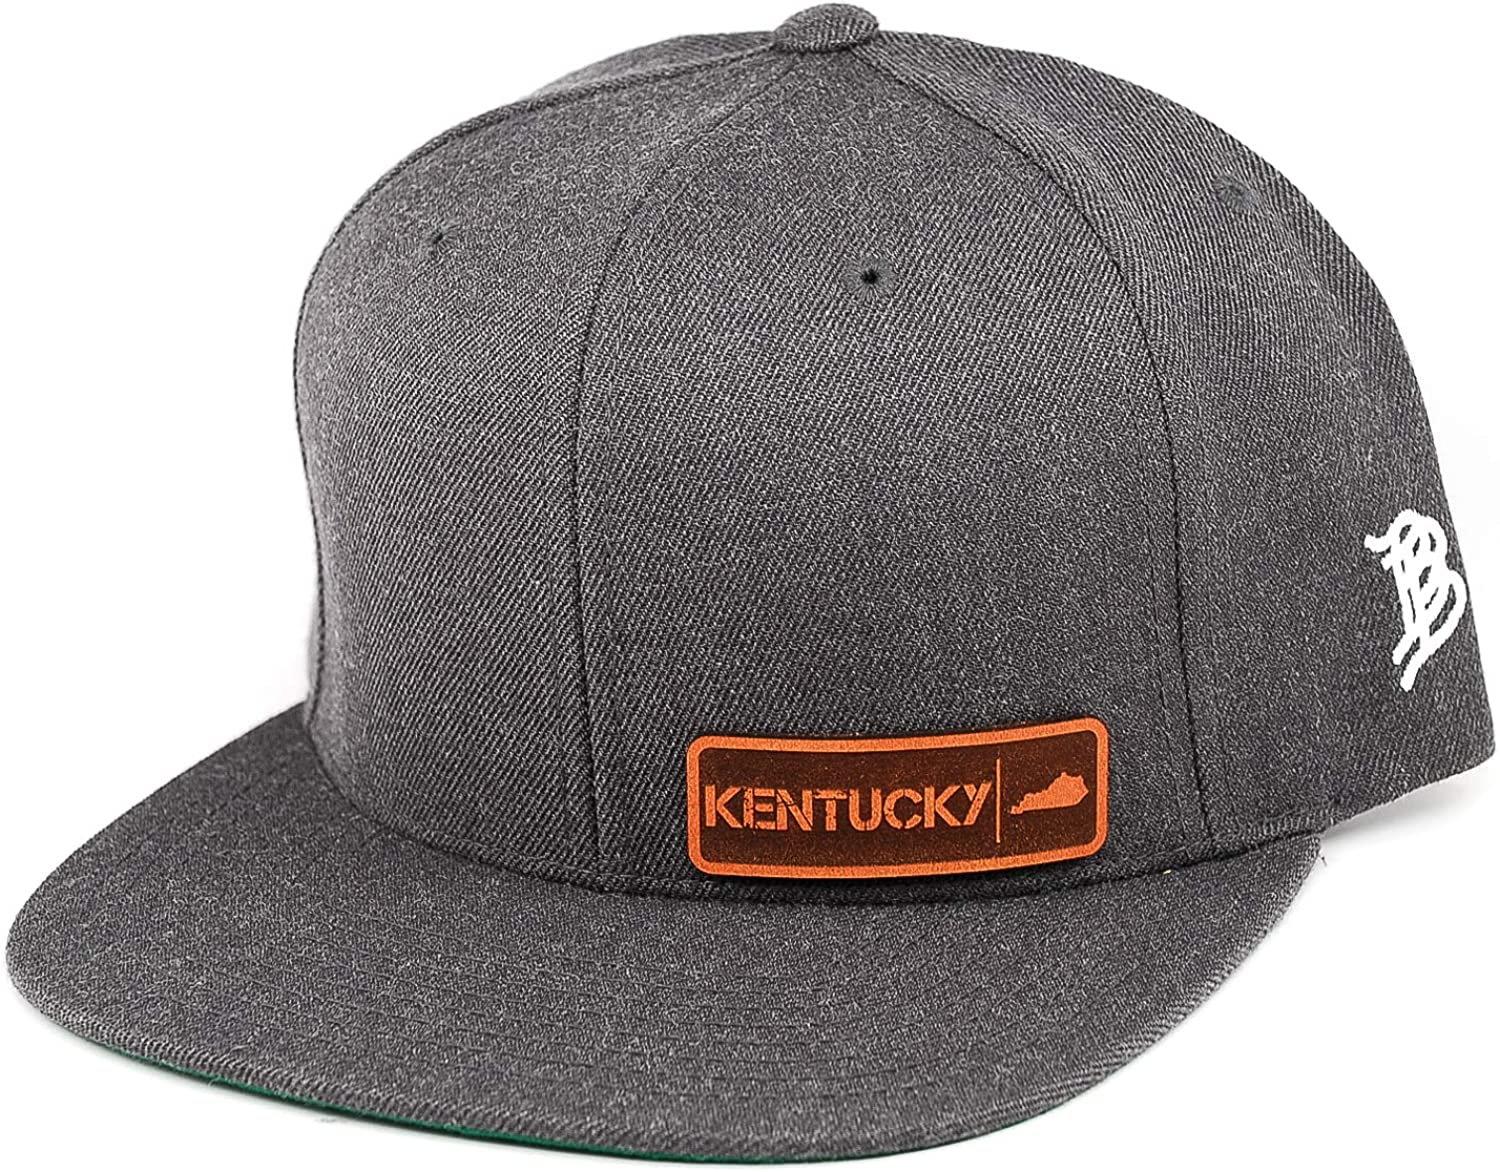 OSFA//Charcoal Branded Bills /'Kentucky Native Leather Patch Snapback Hat